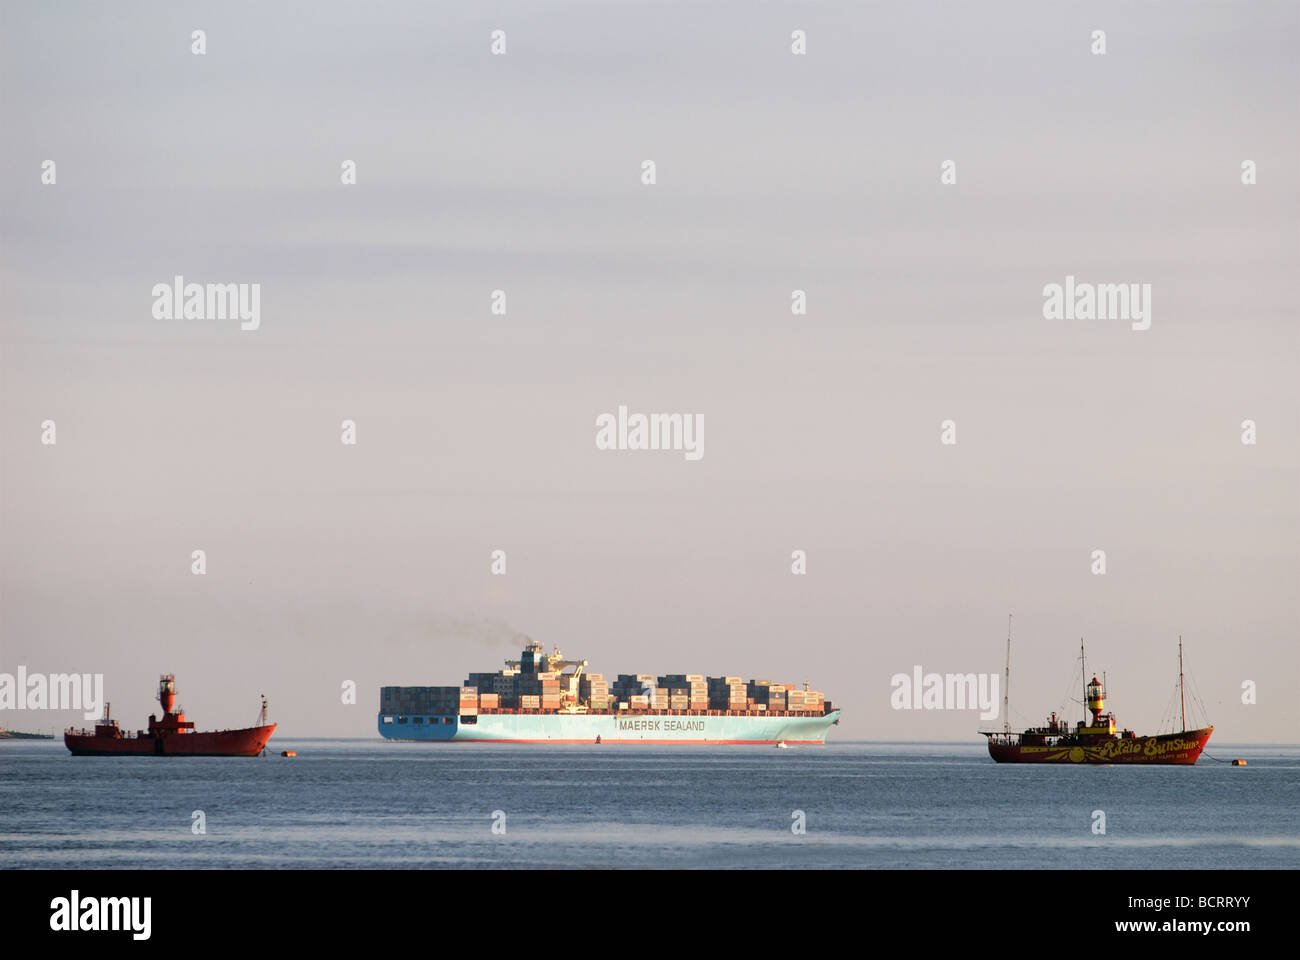 Maersk Sealand container ship, Felixstowe, Suffolk, UK. Stock Photo